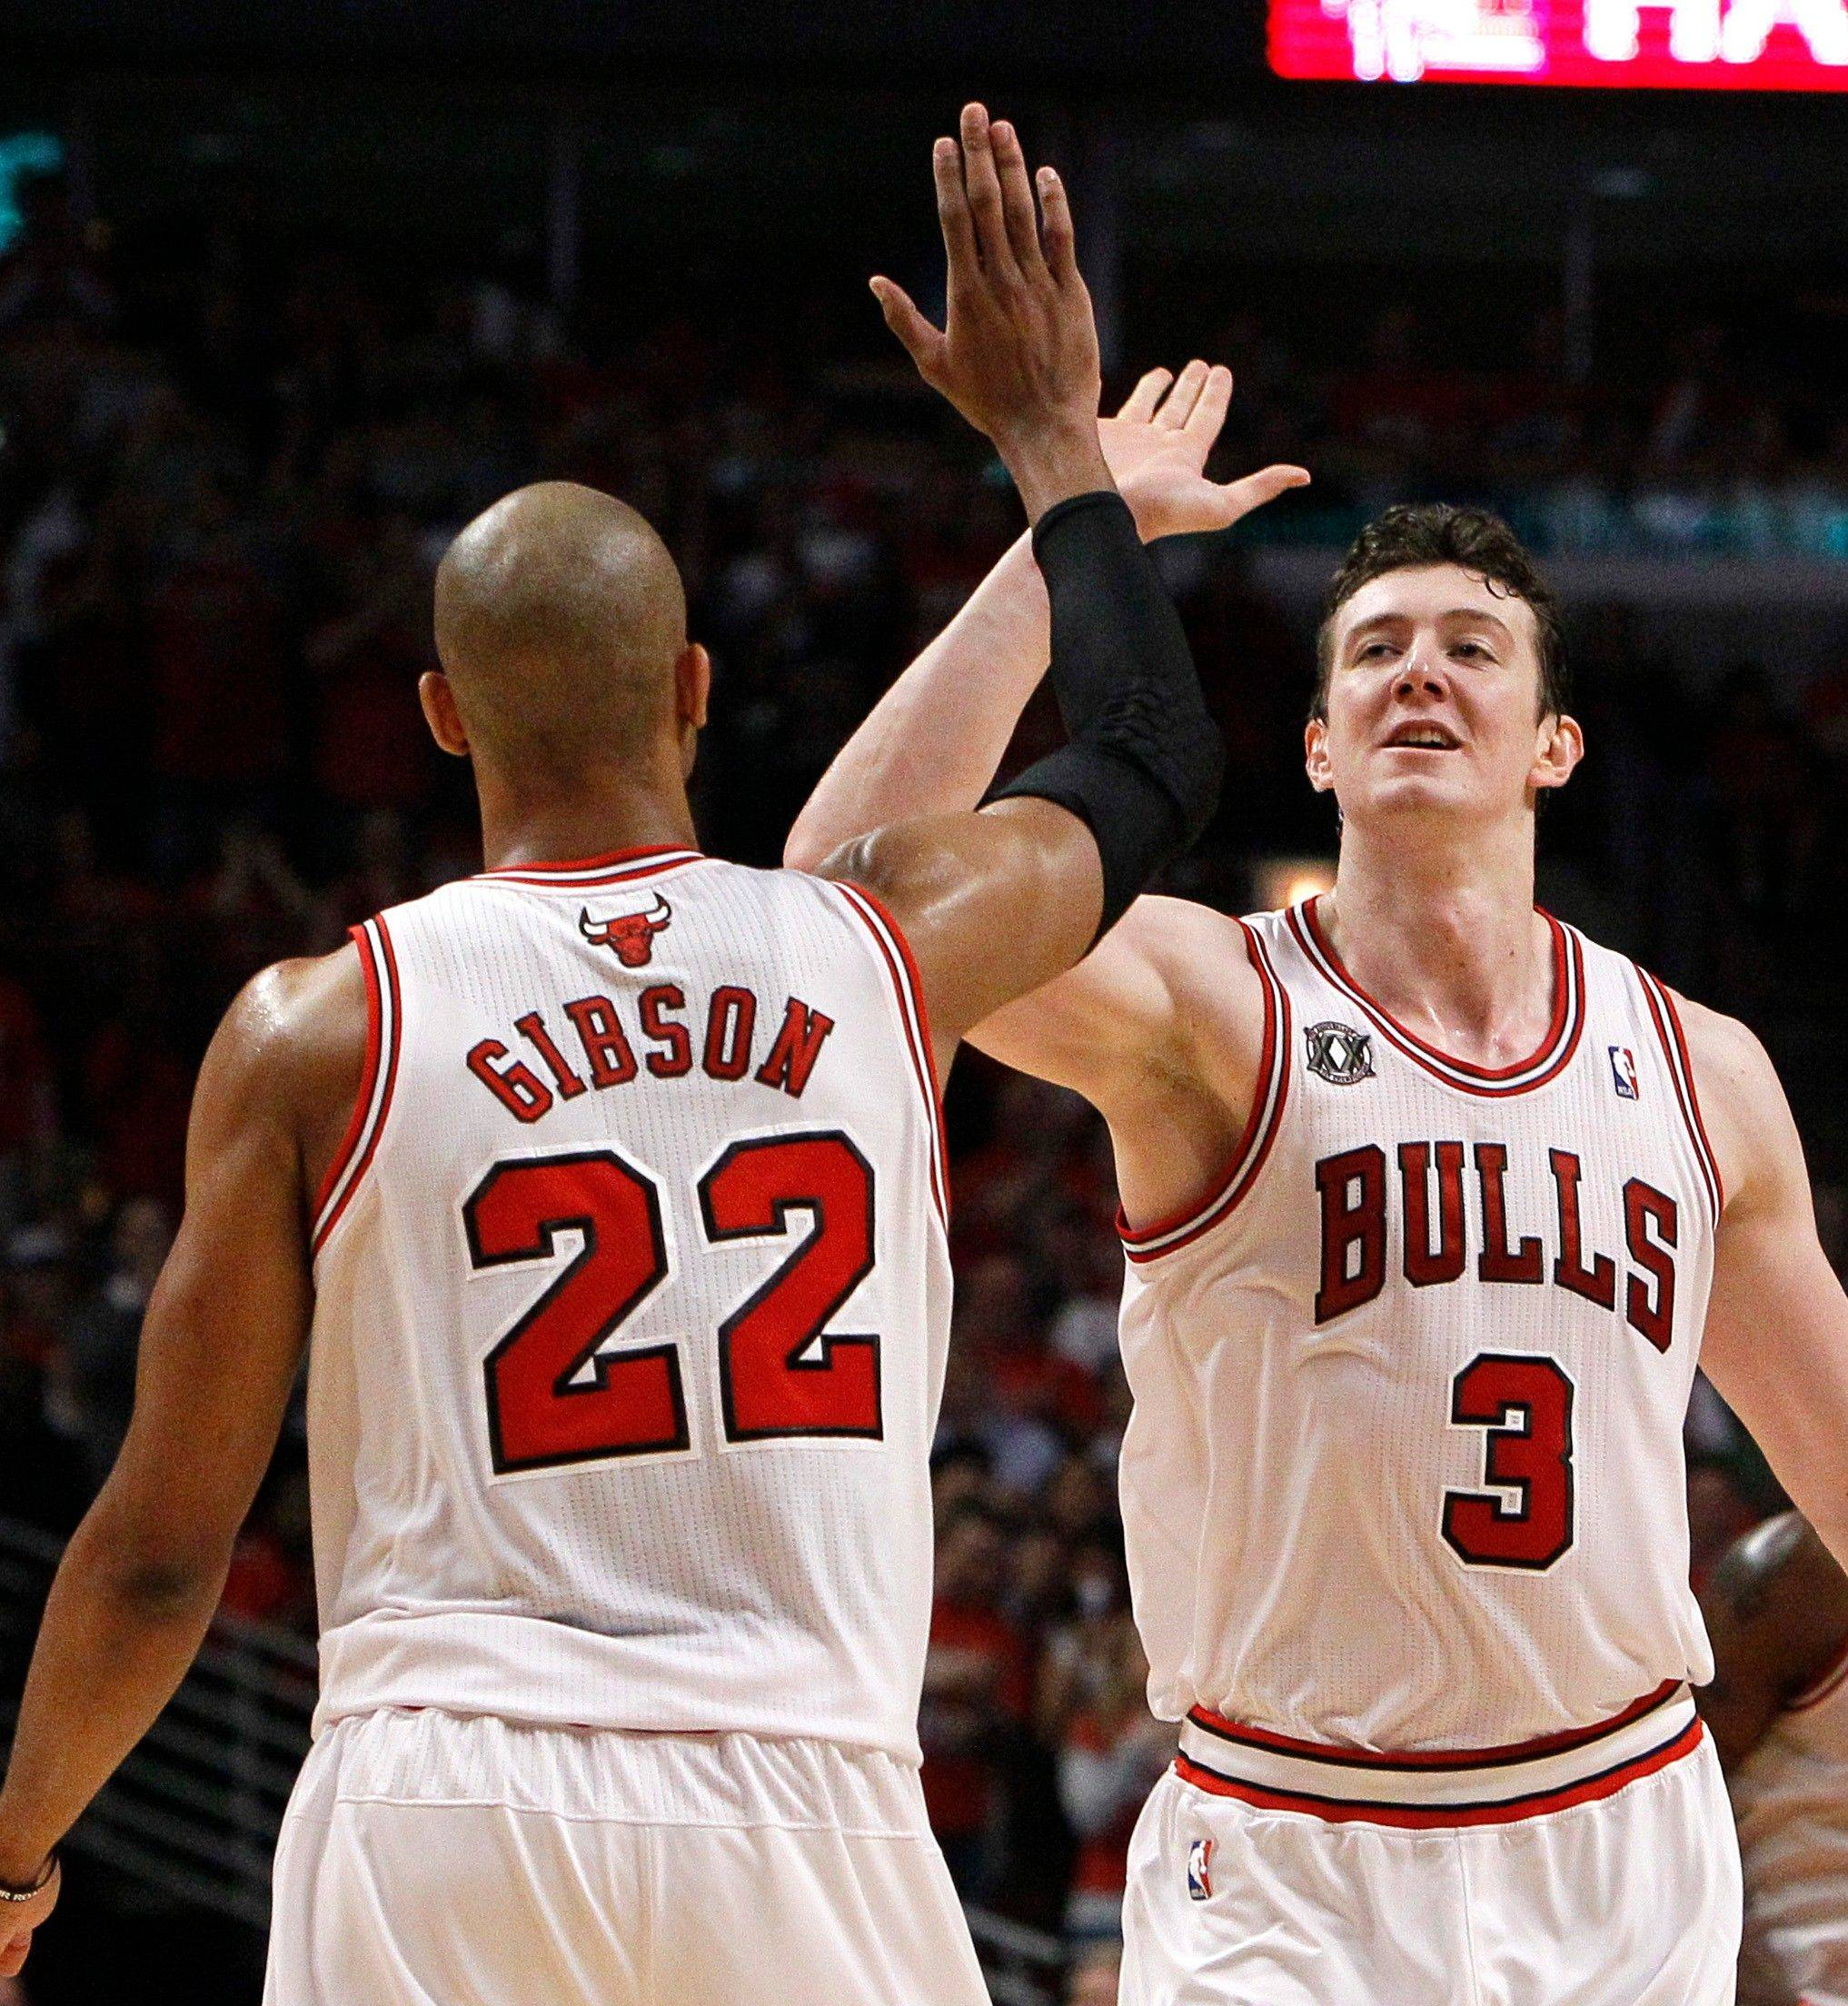 Asik's role rising in the playoffs